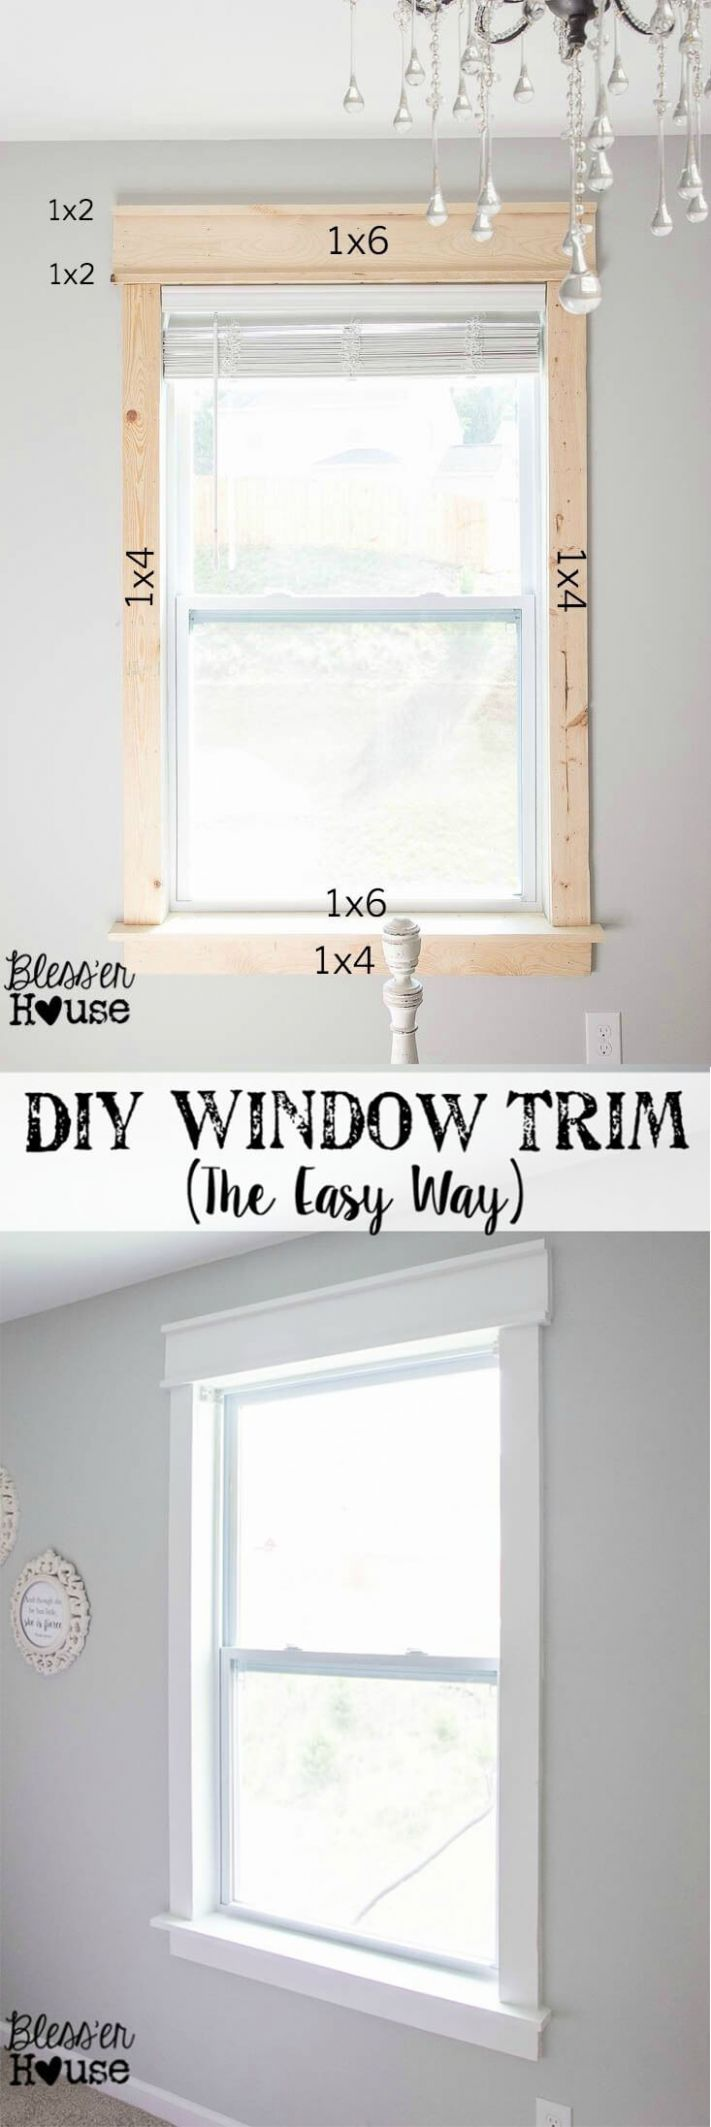 11 Best Molding Ideas and Designs for 11 - window casing ideas interior